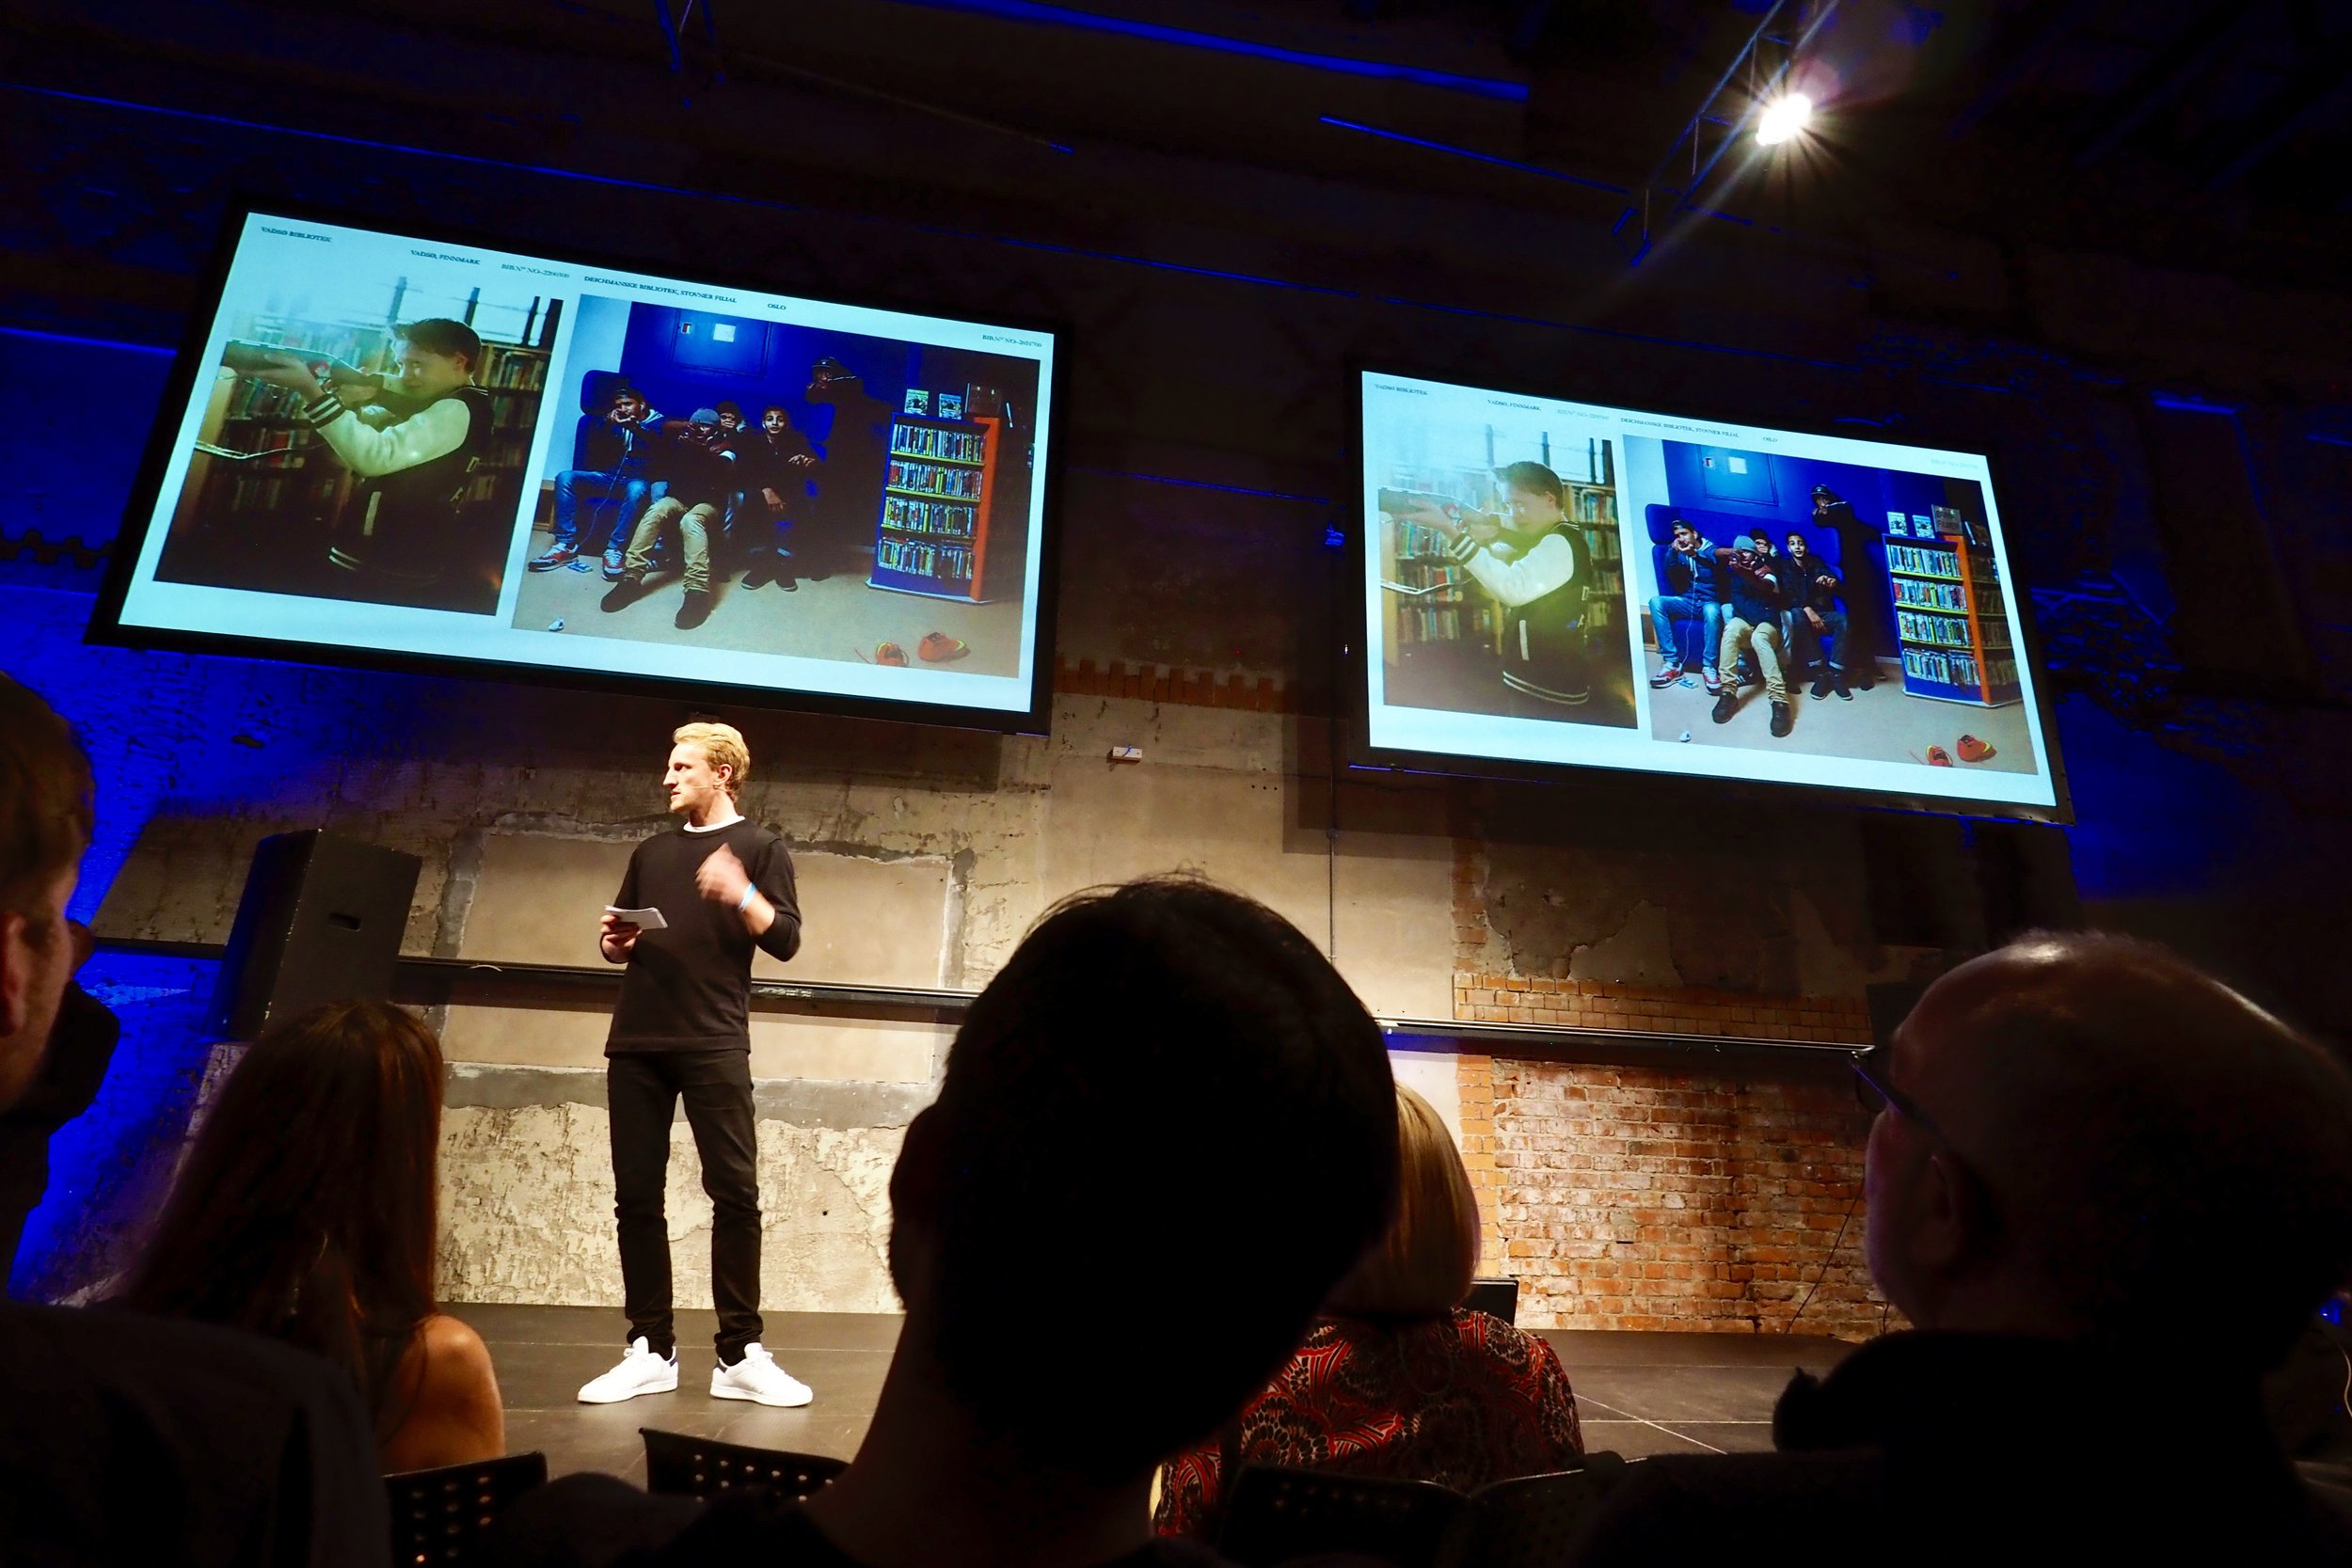 Presentation of «The Norwegian Library» in 6 minutes and 40 seconds... Puh! Can be watched at  Aftenposten TV .